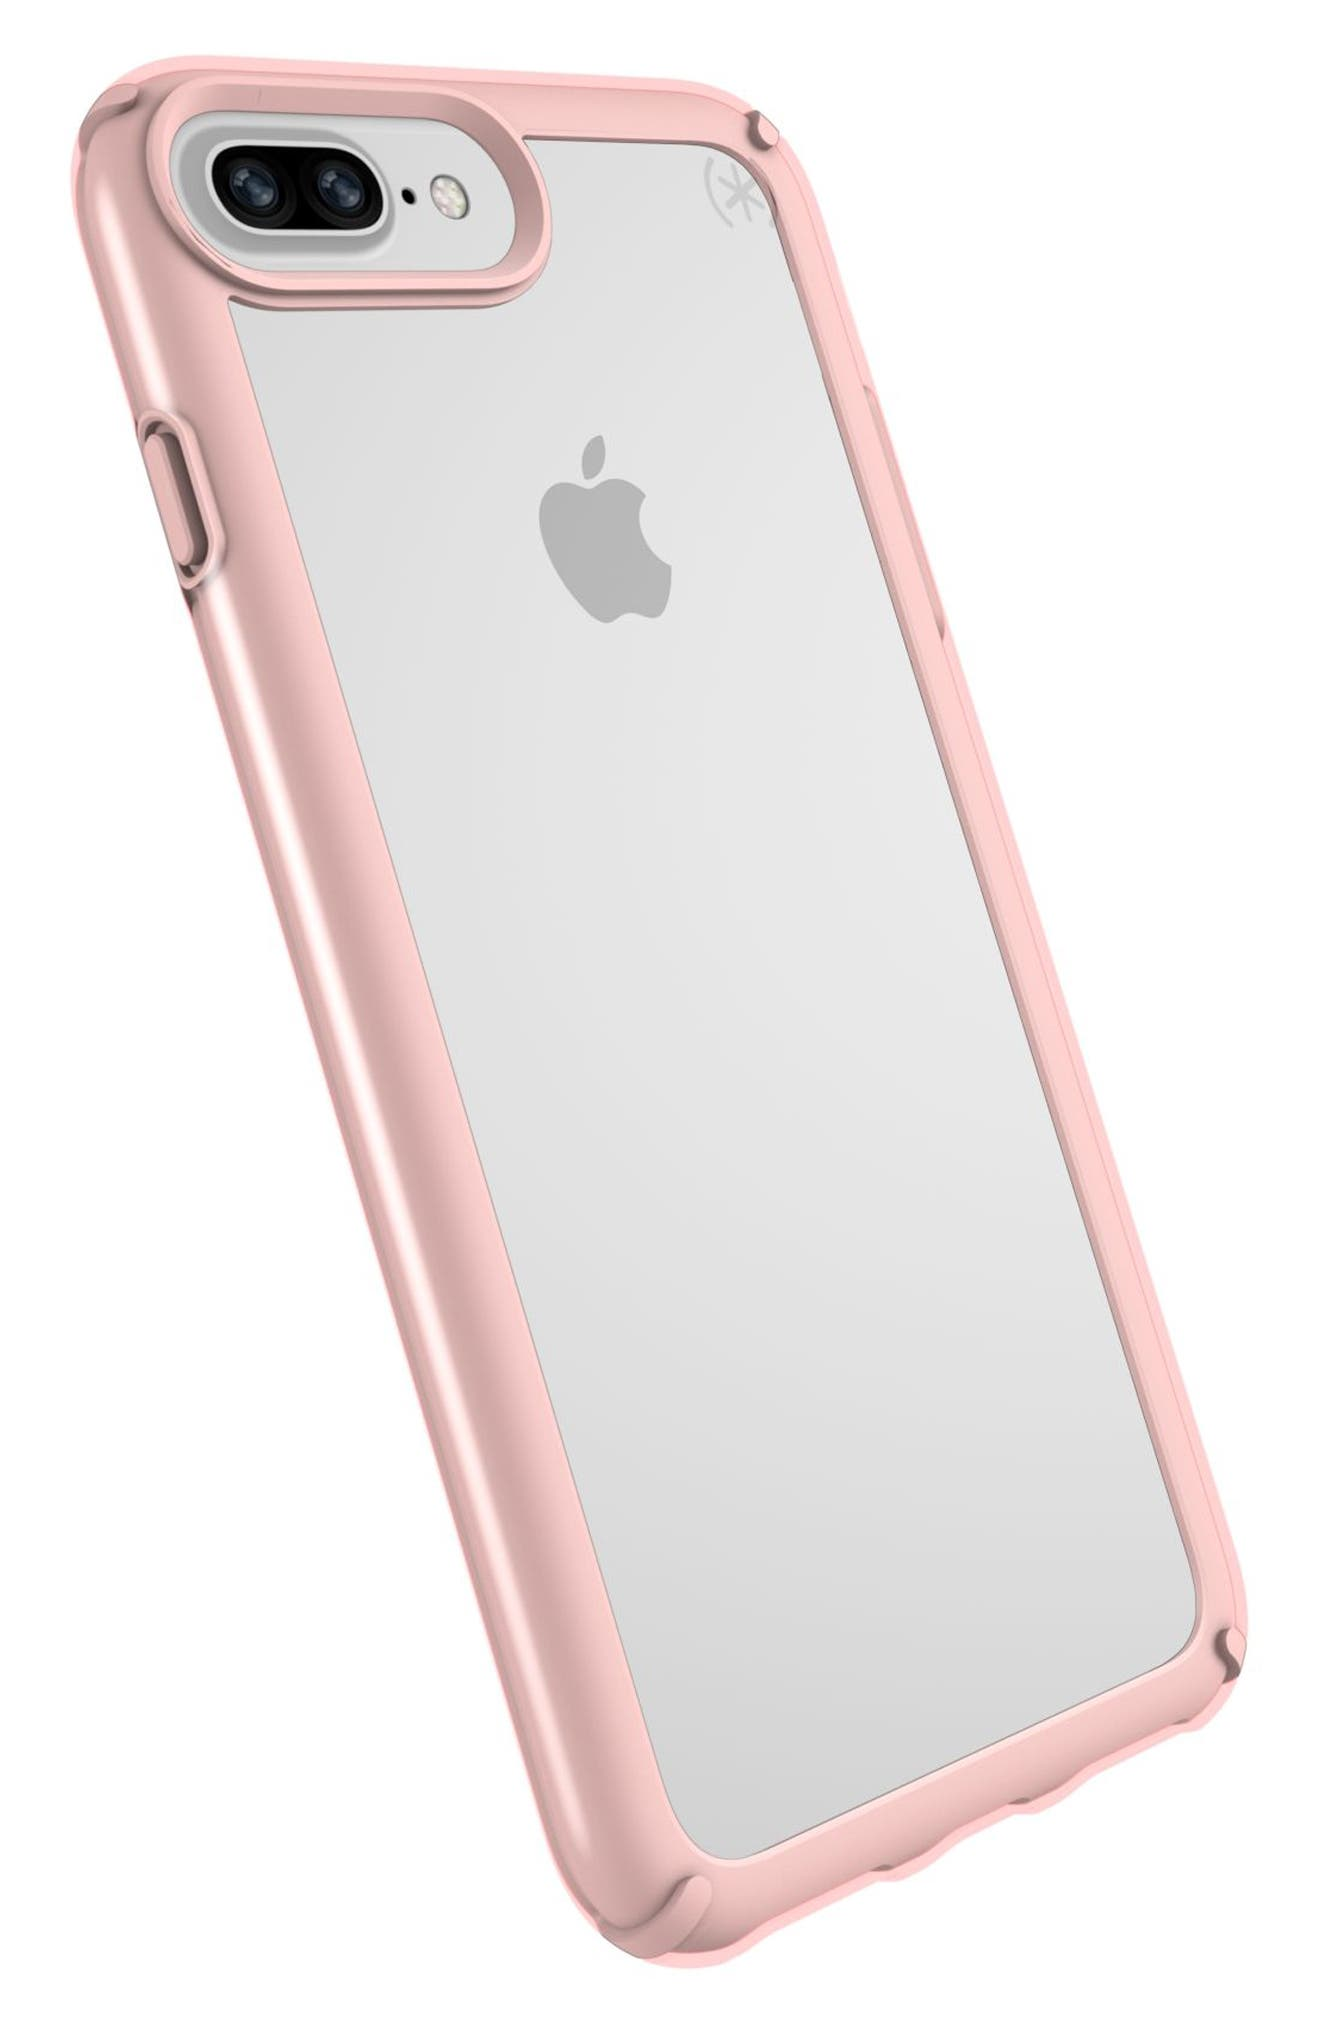 iPhone 6/6s/7/8 Plus Case,                             Alternate thumbnail 4, color,                             Clear/ Rose Gold